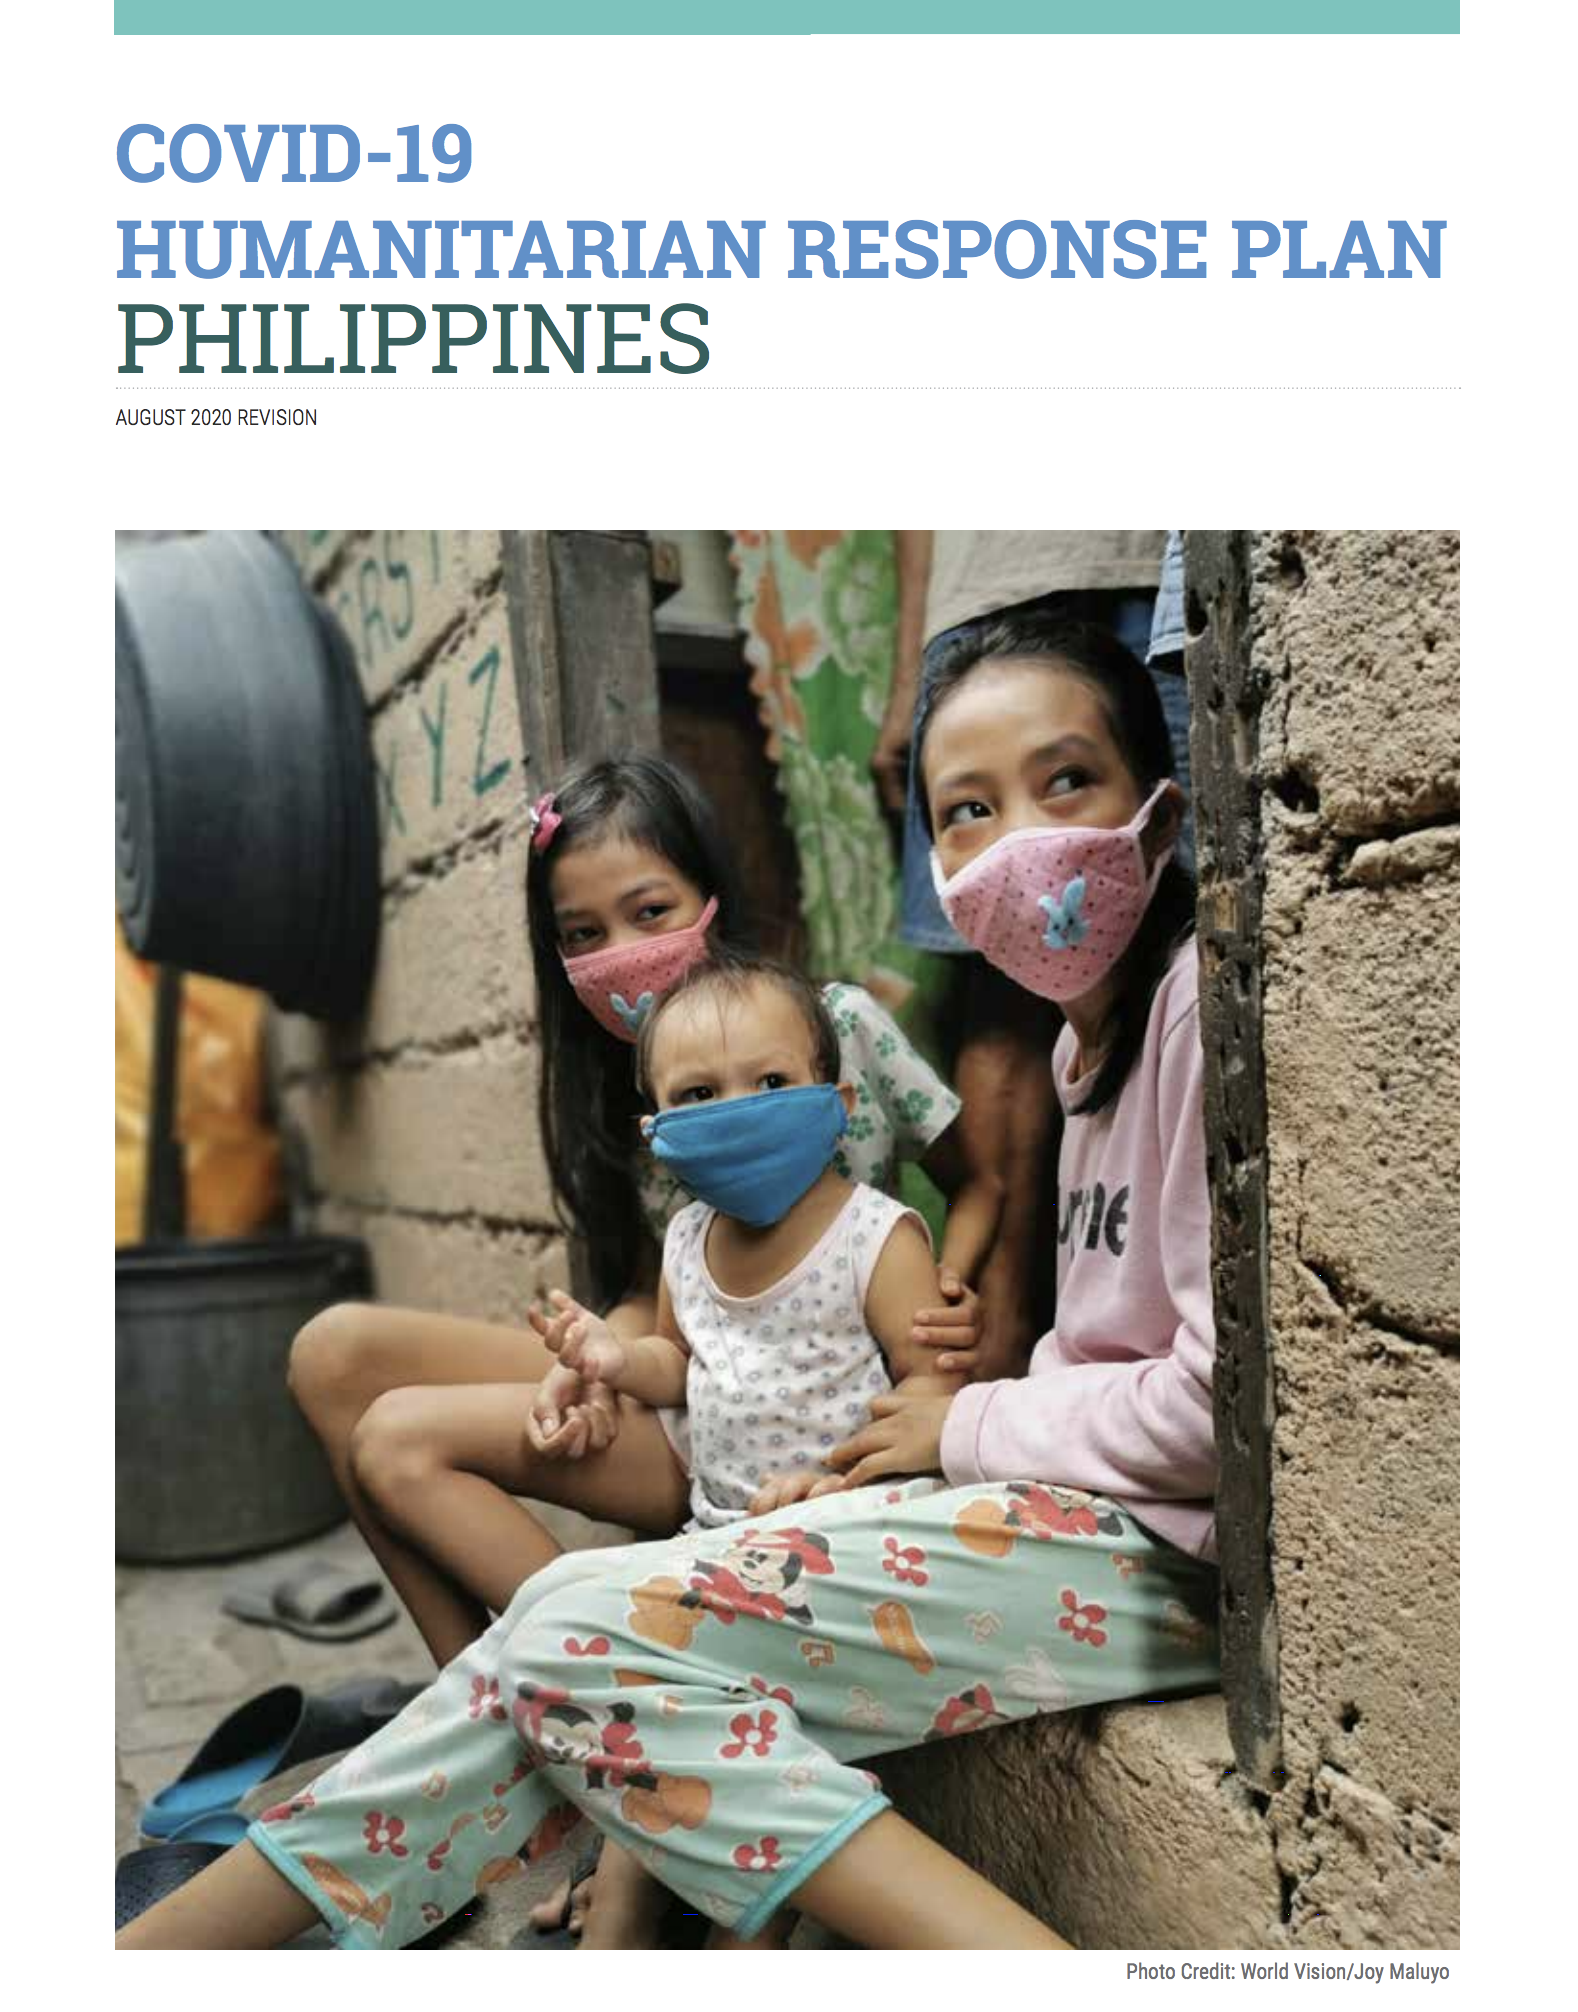 COVID-19 Humanitarian Response Plan Philippines August 2020 Revision